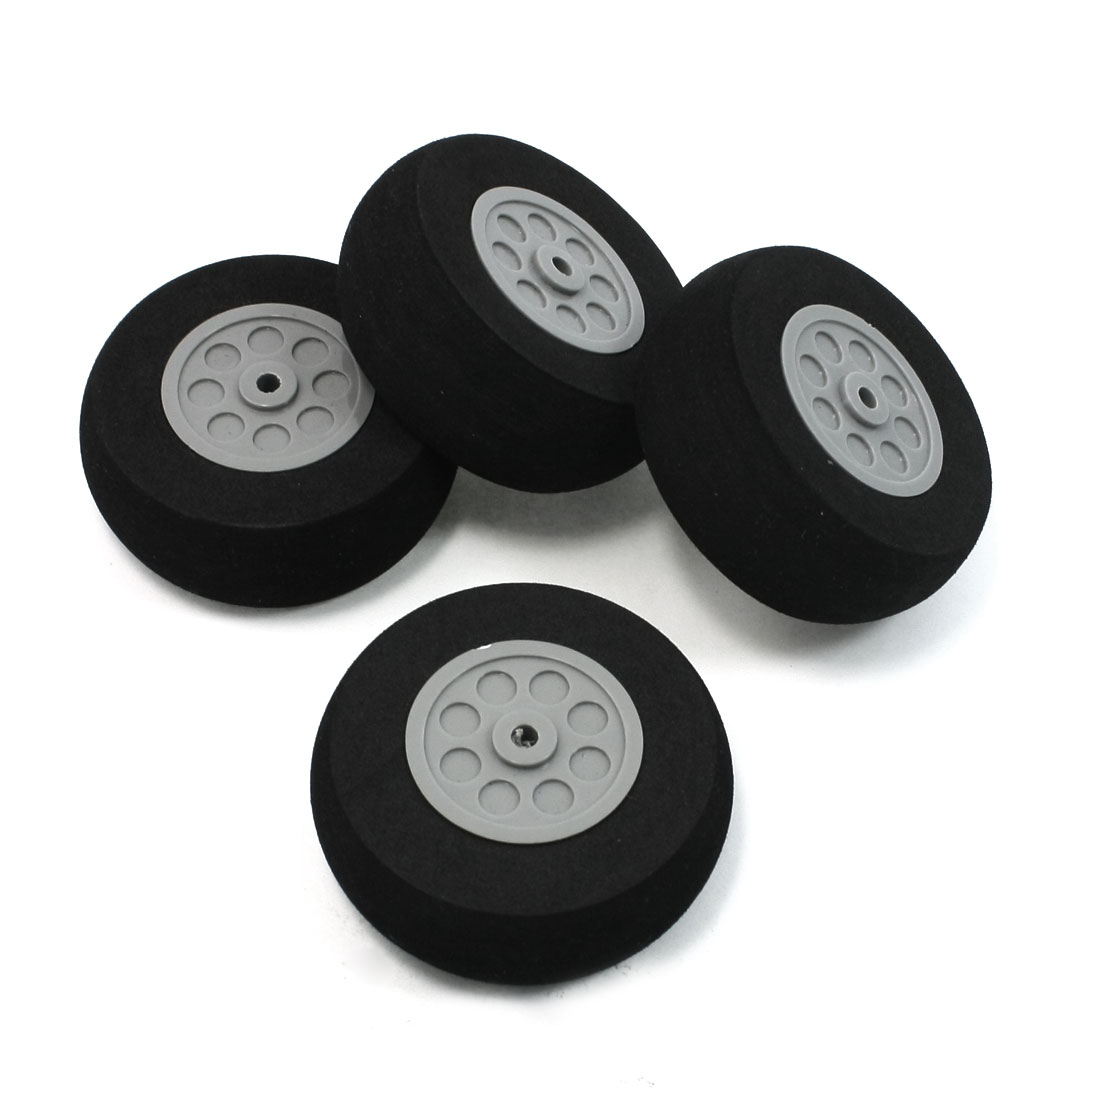 RC DIY Plane Model Airplane Plastic Hub Black Foam Wheel Repair Part 65mm